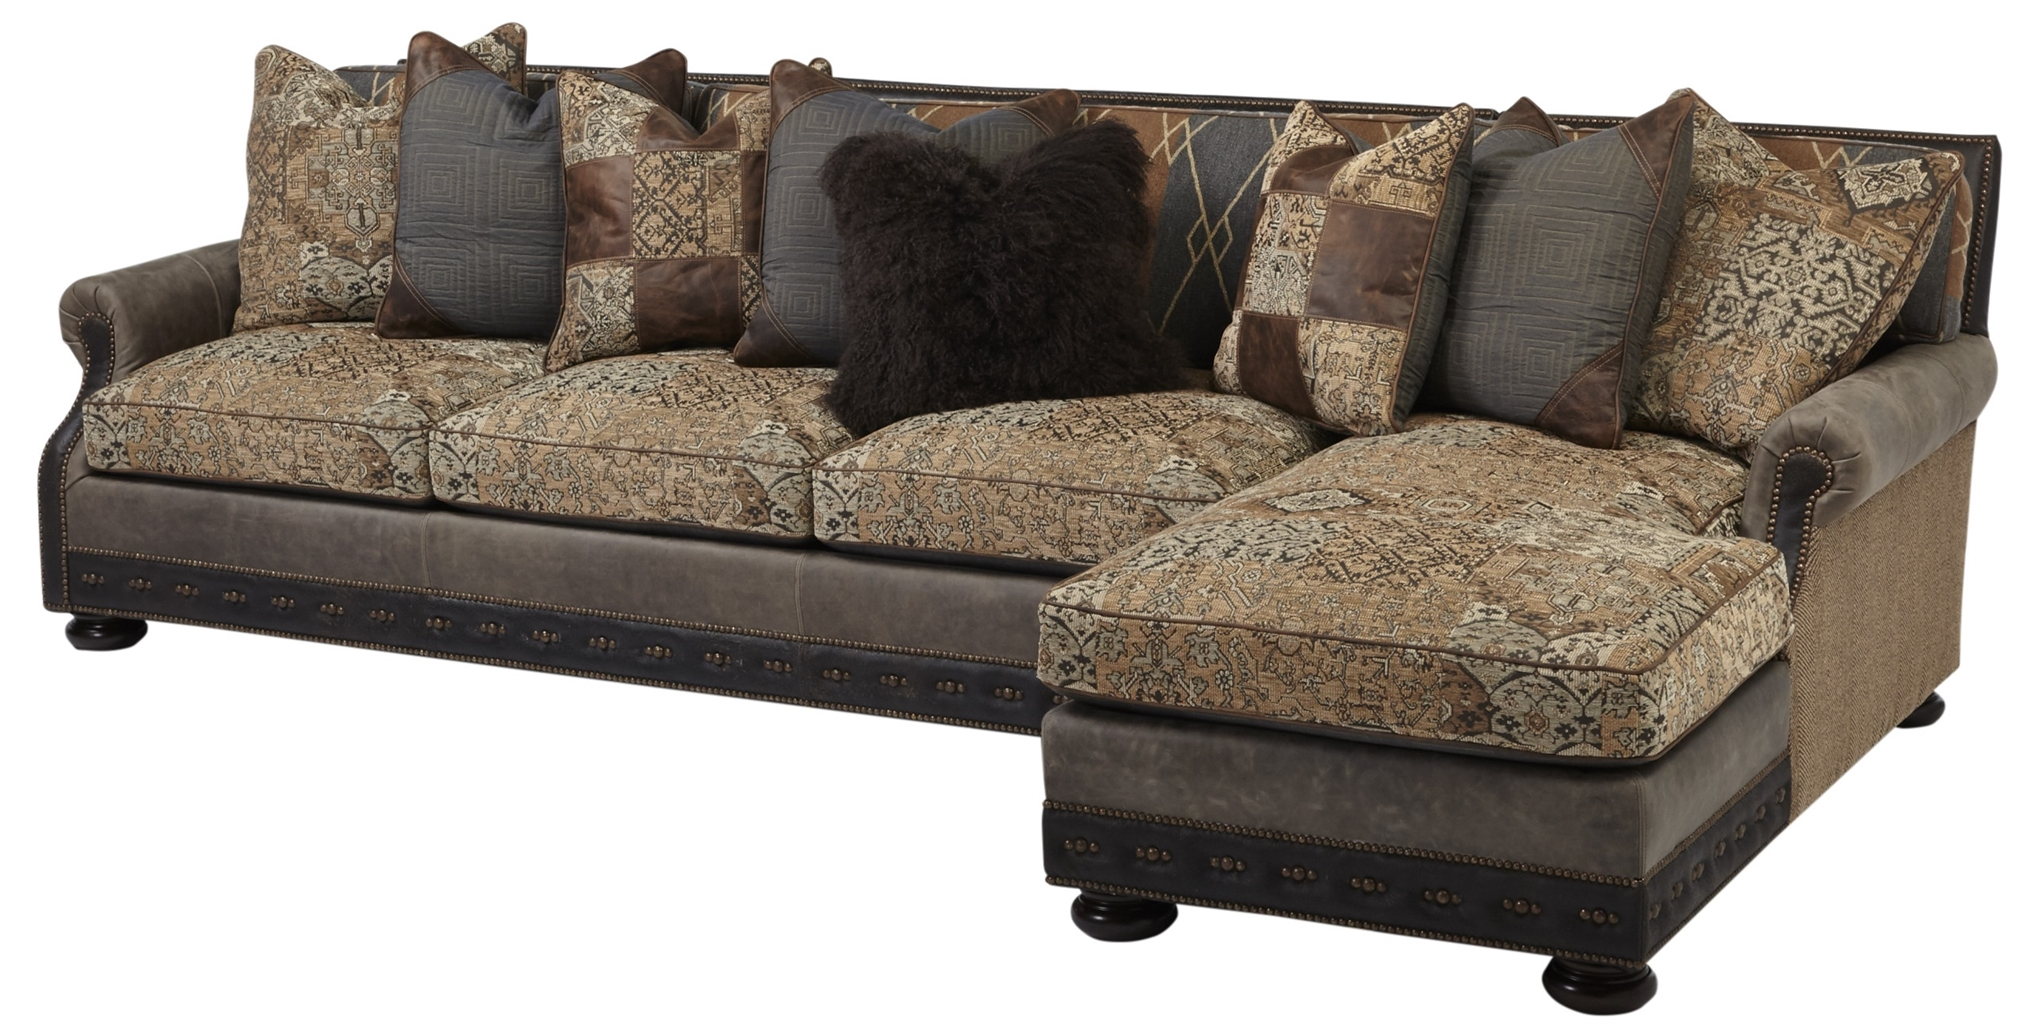 Cool Sofa With Chaise Lounge. High End Furnishings. 556